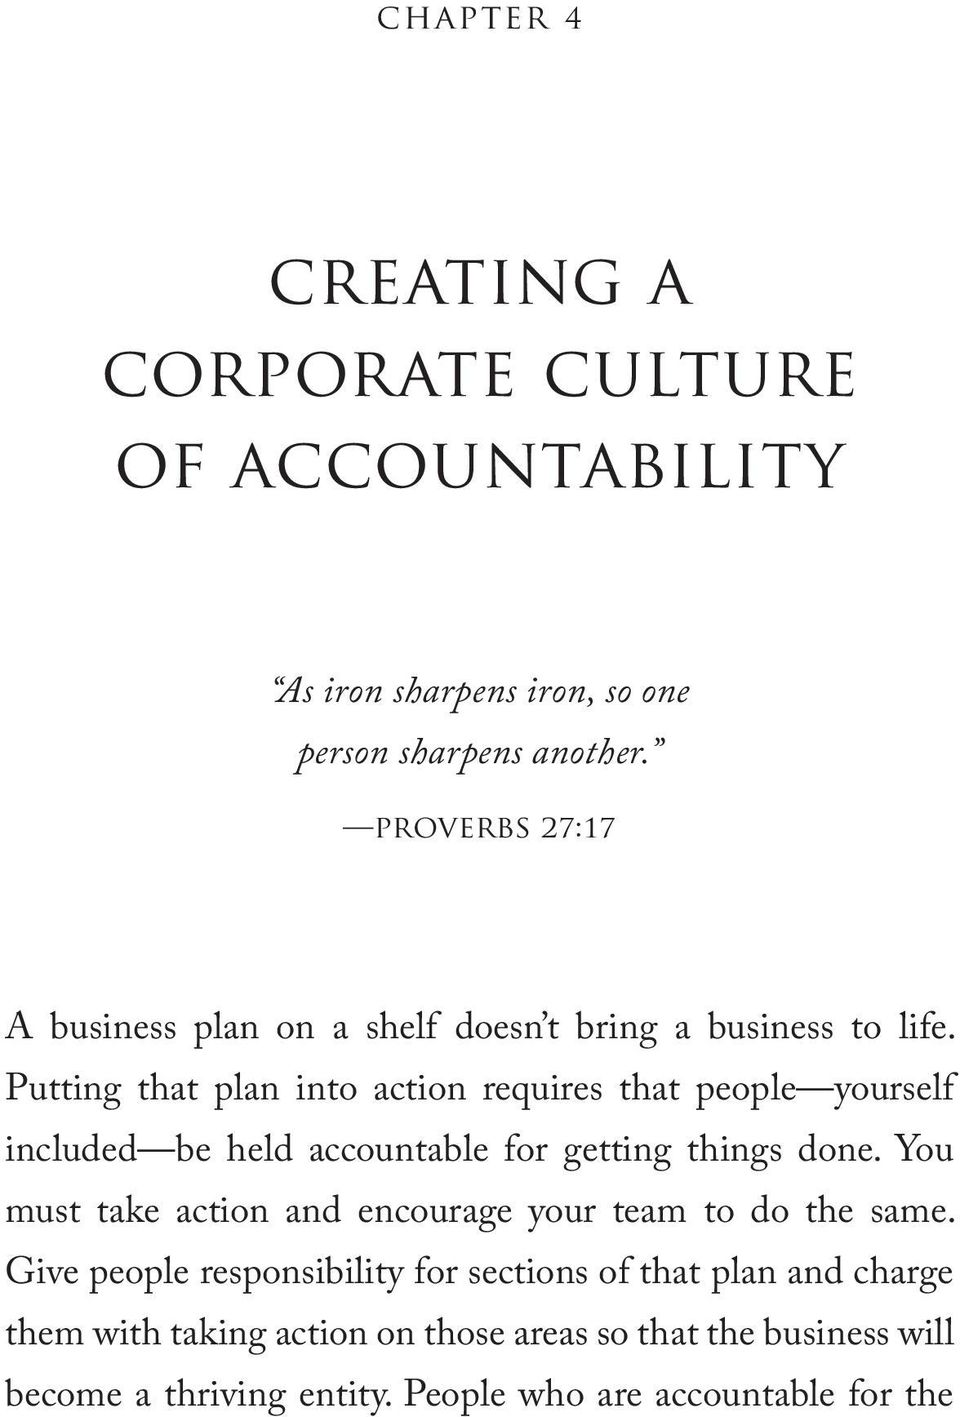 Putting that plan into action requires that people yourself included be held accountable for getting things done.